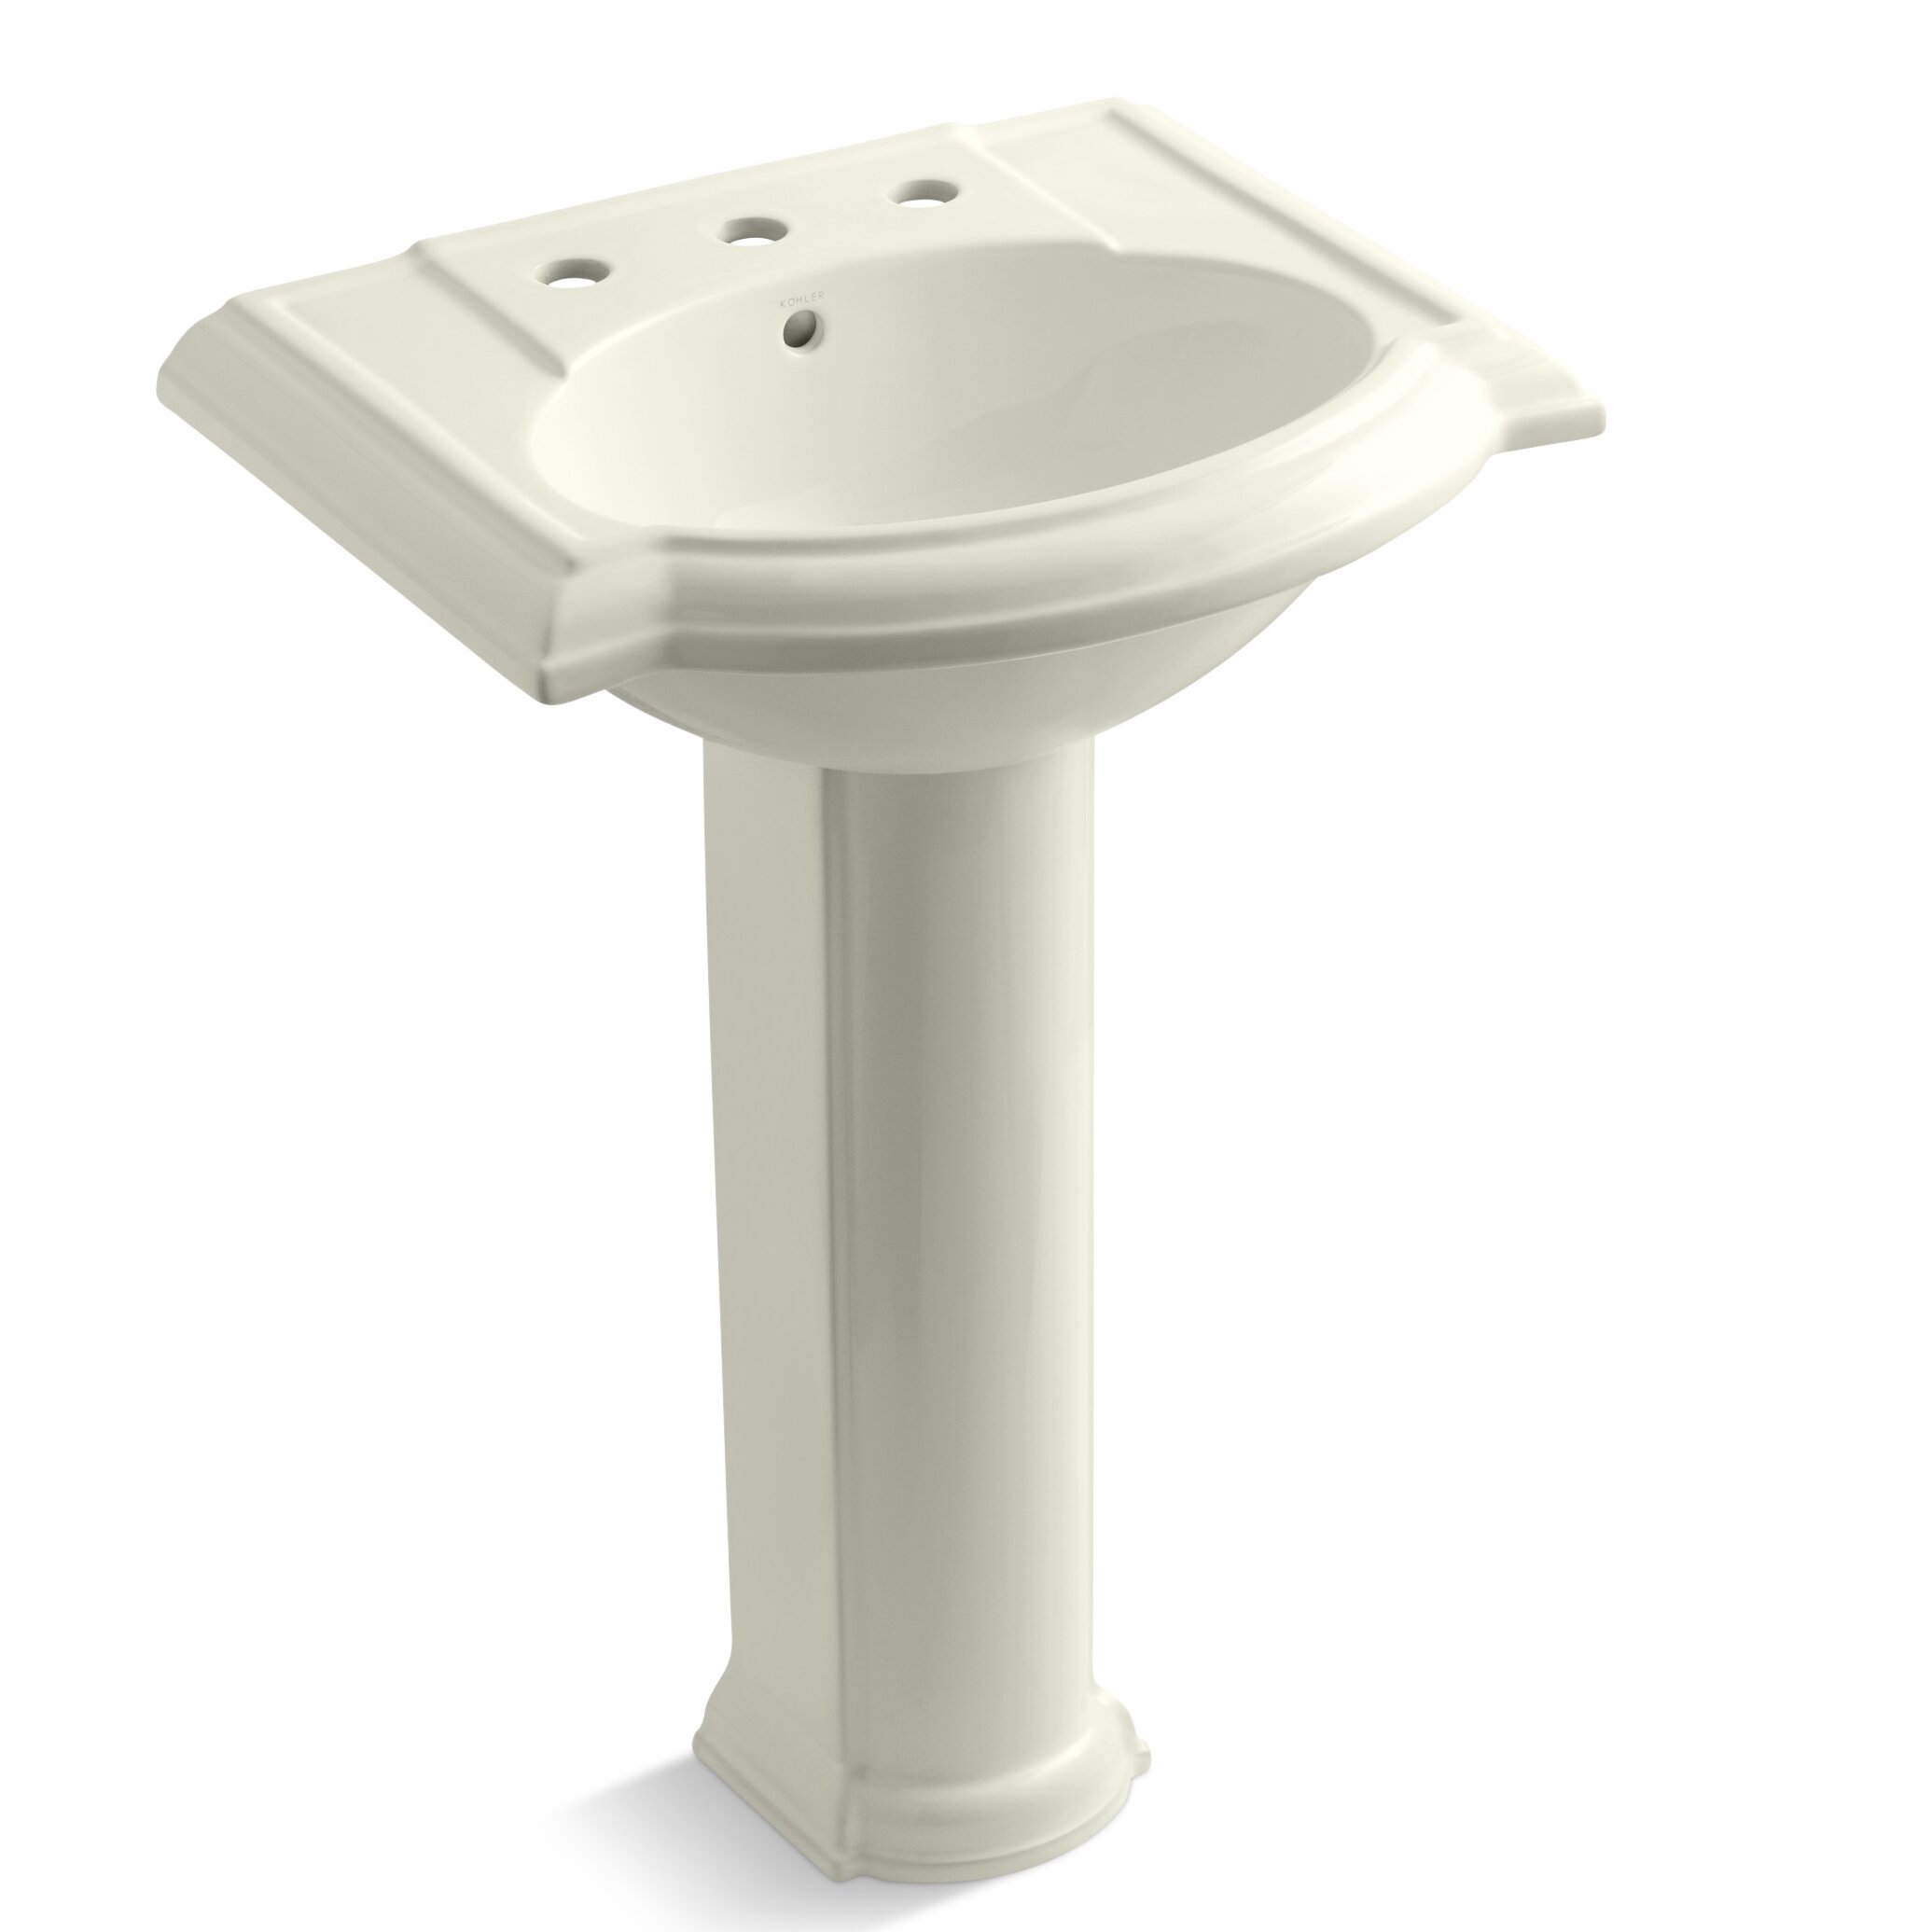 Kohler devonshire 24 pedestal bathroom sink reviews wayfair - Kohler devonshire reviews ...